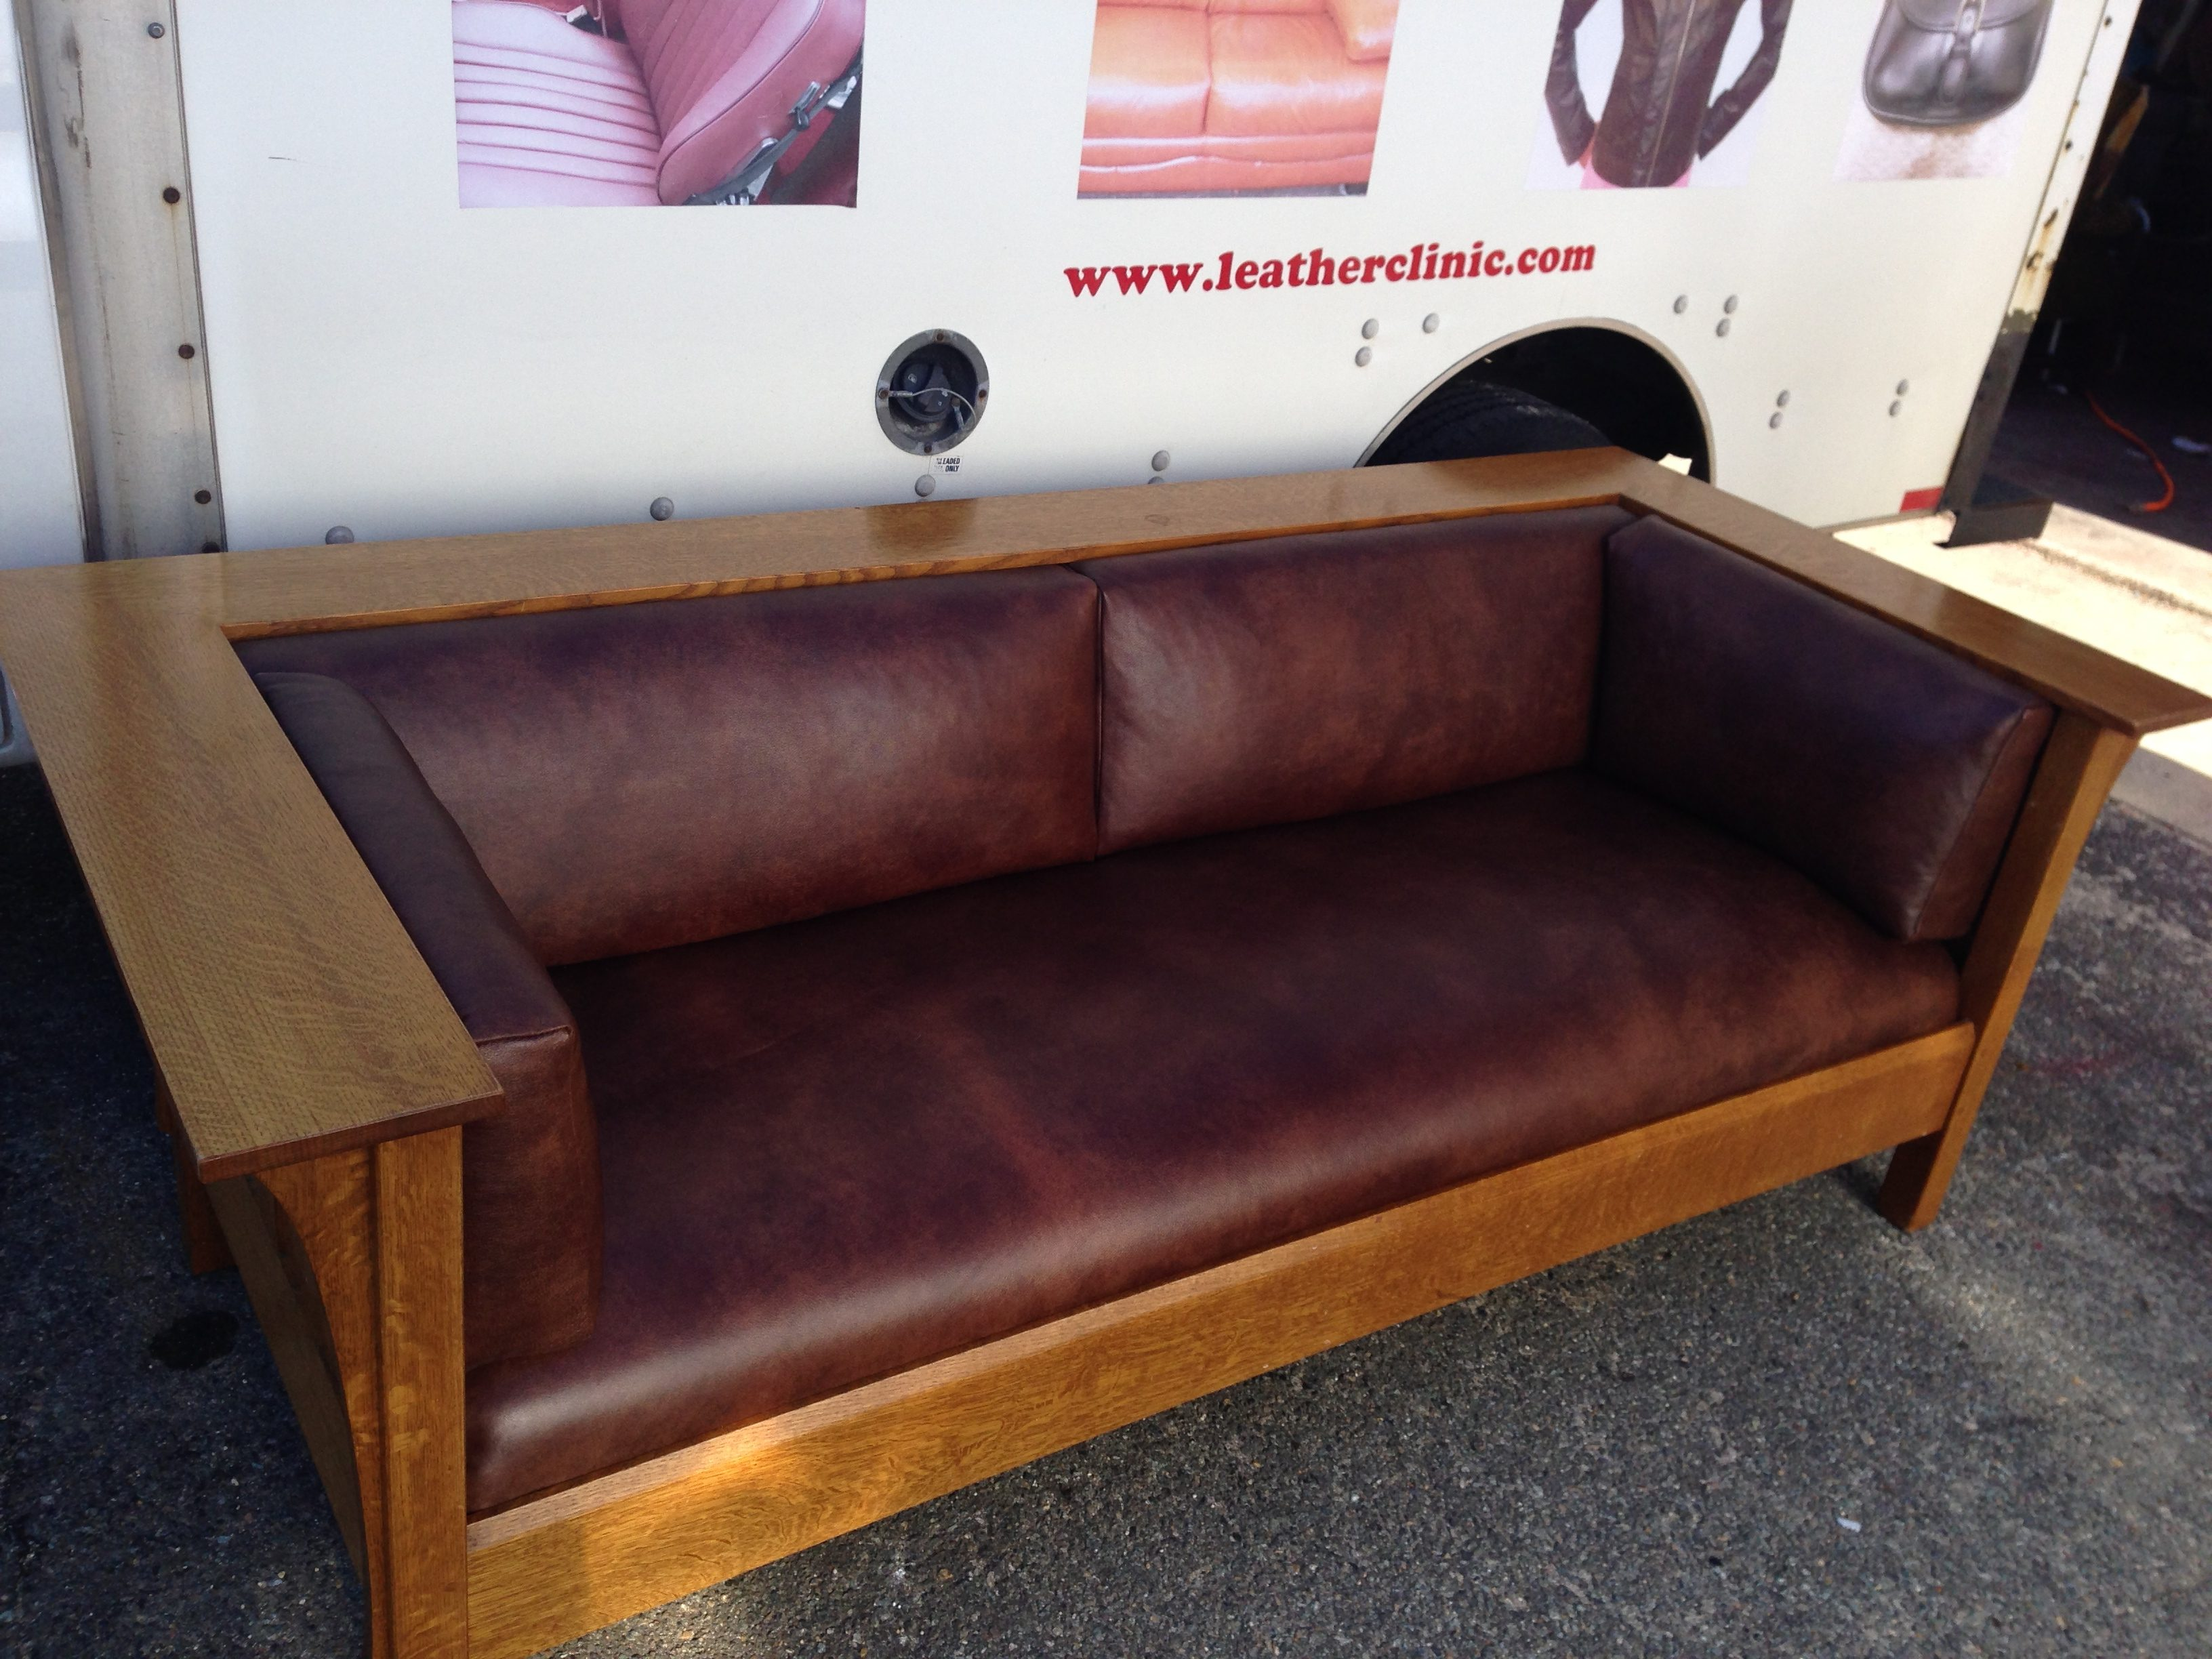 Sofa with wood frame